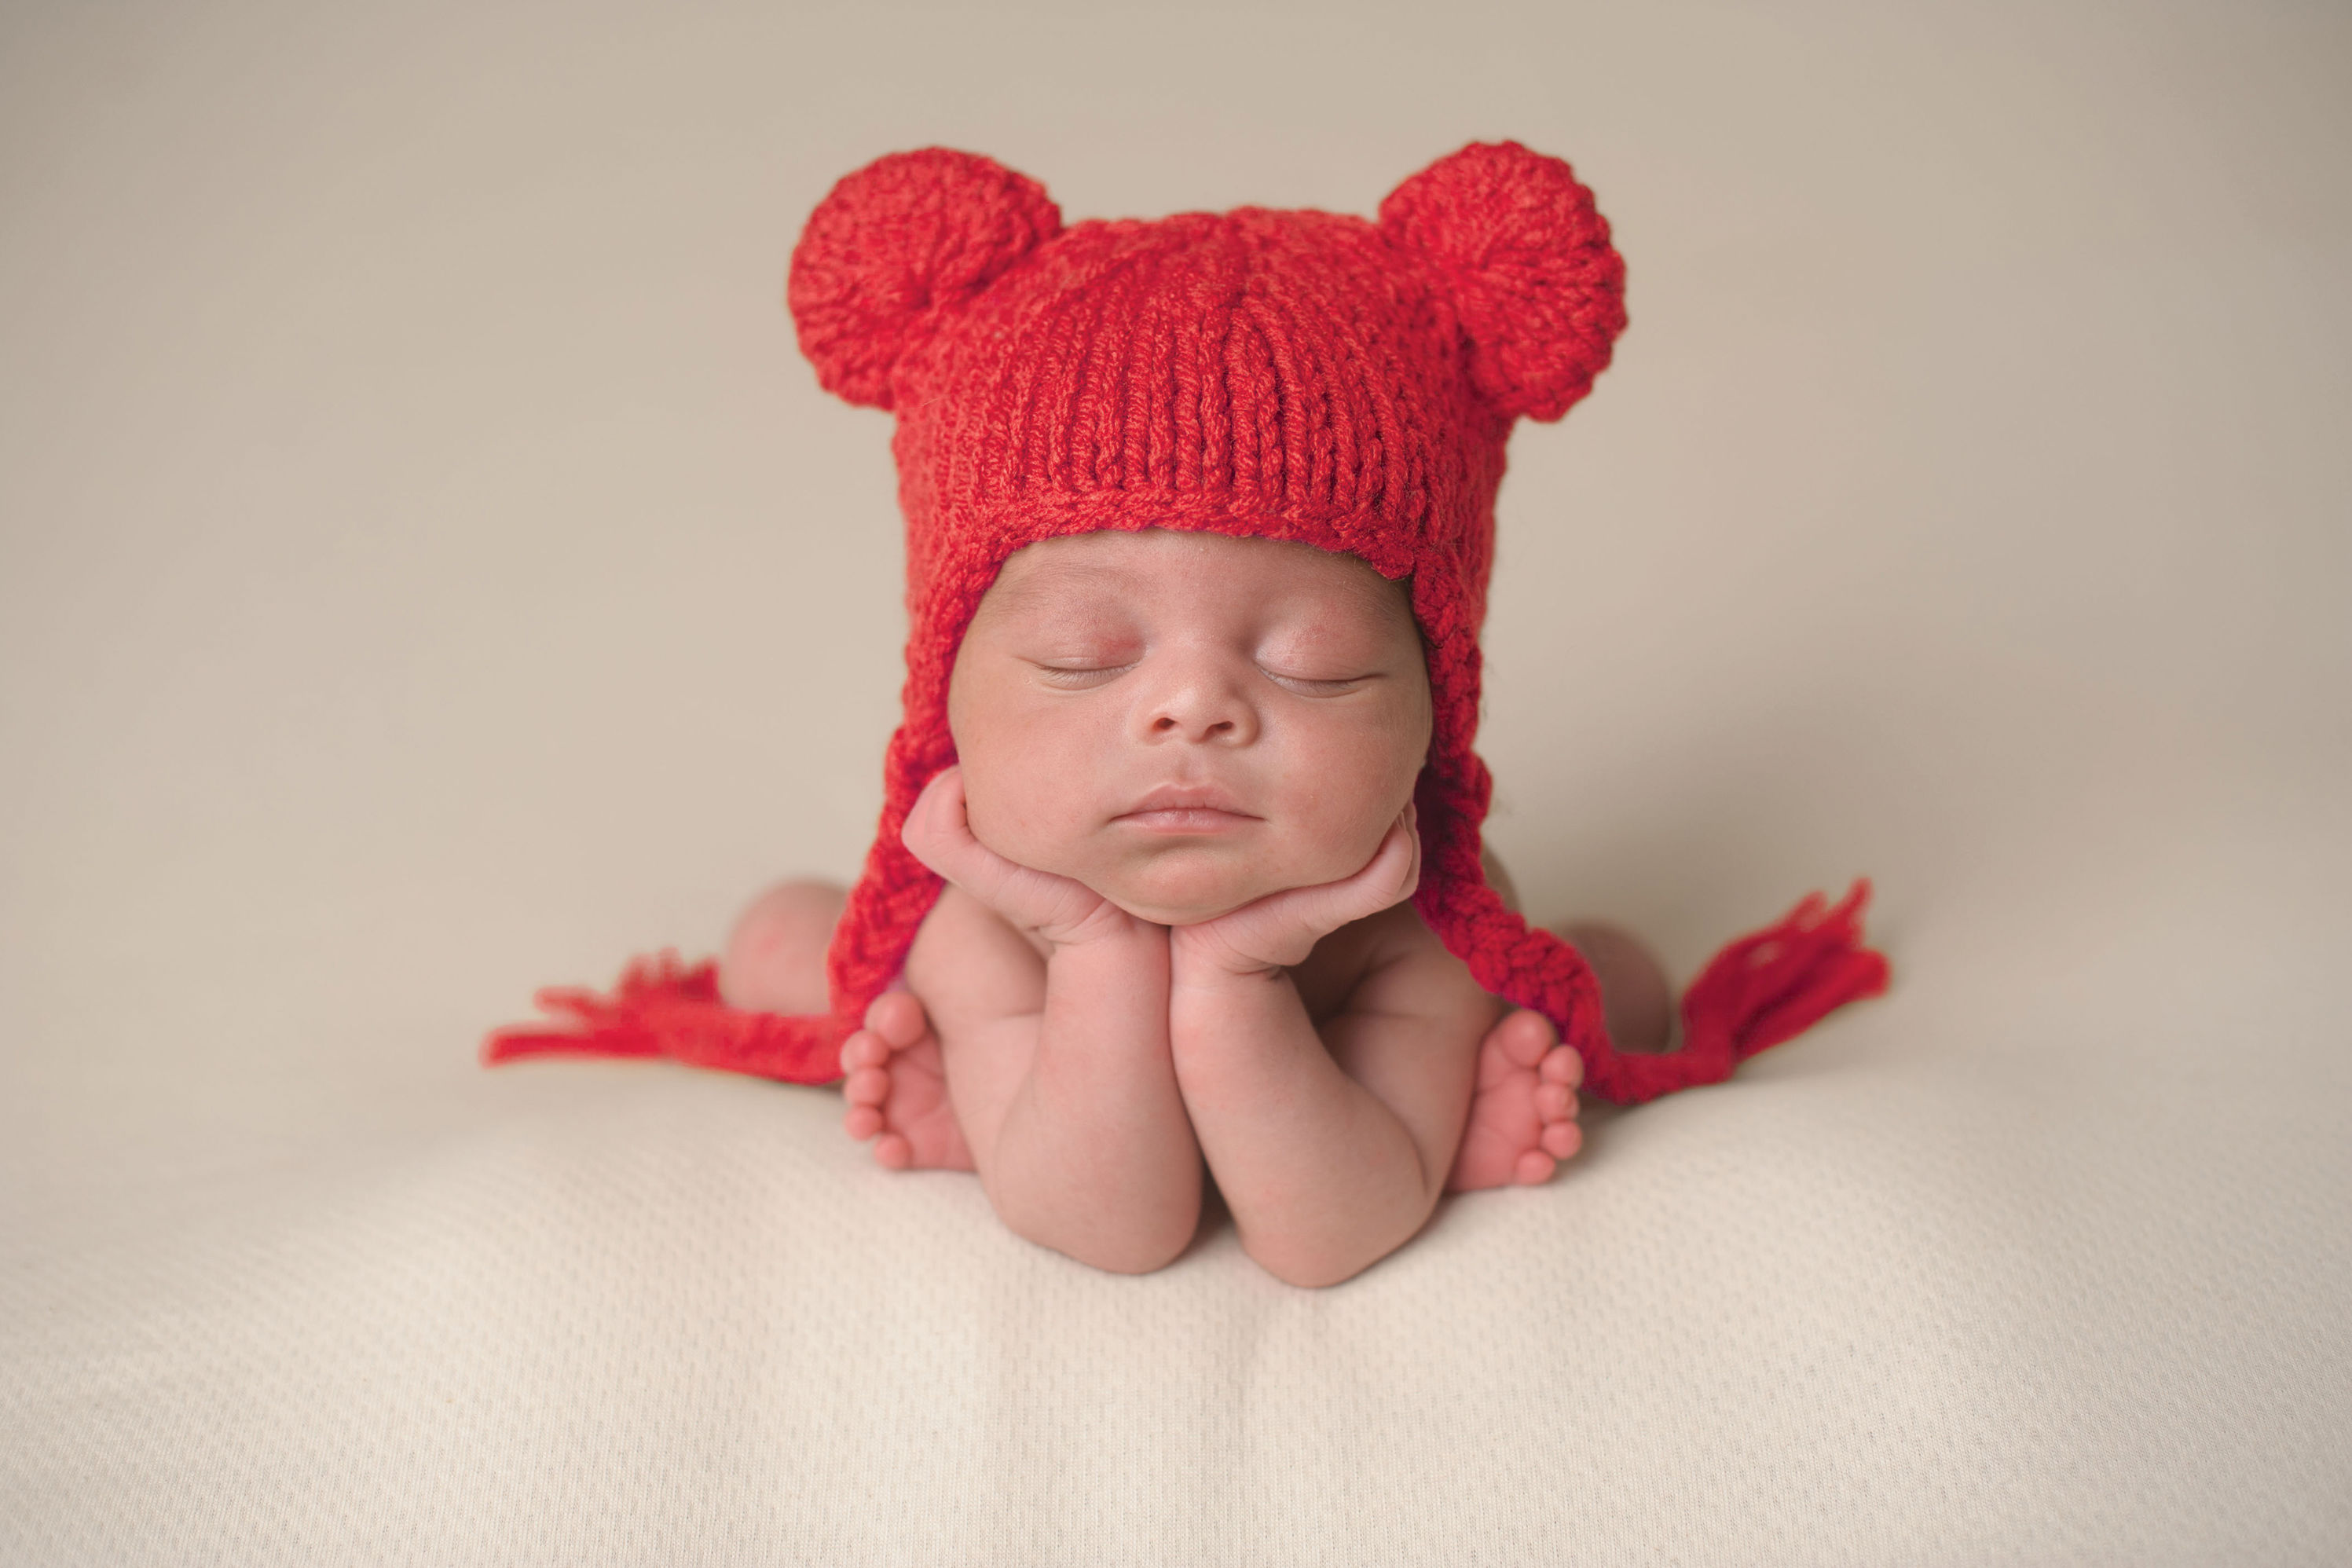 The American Heart Association Needs Volunteers to Knit Hats for Newborns